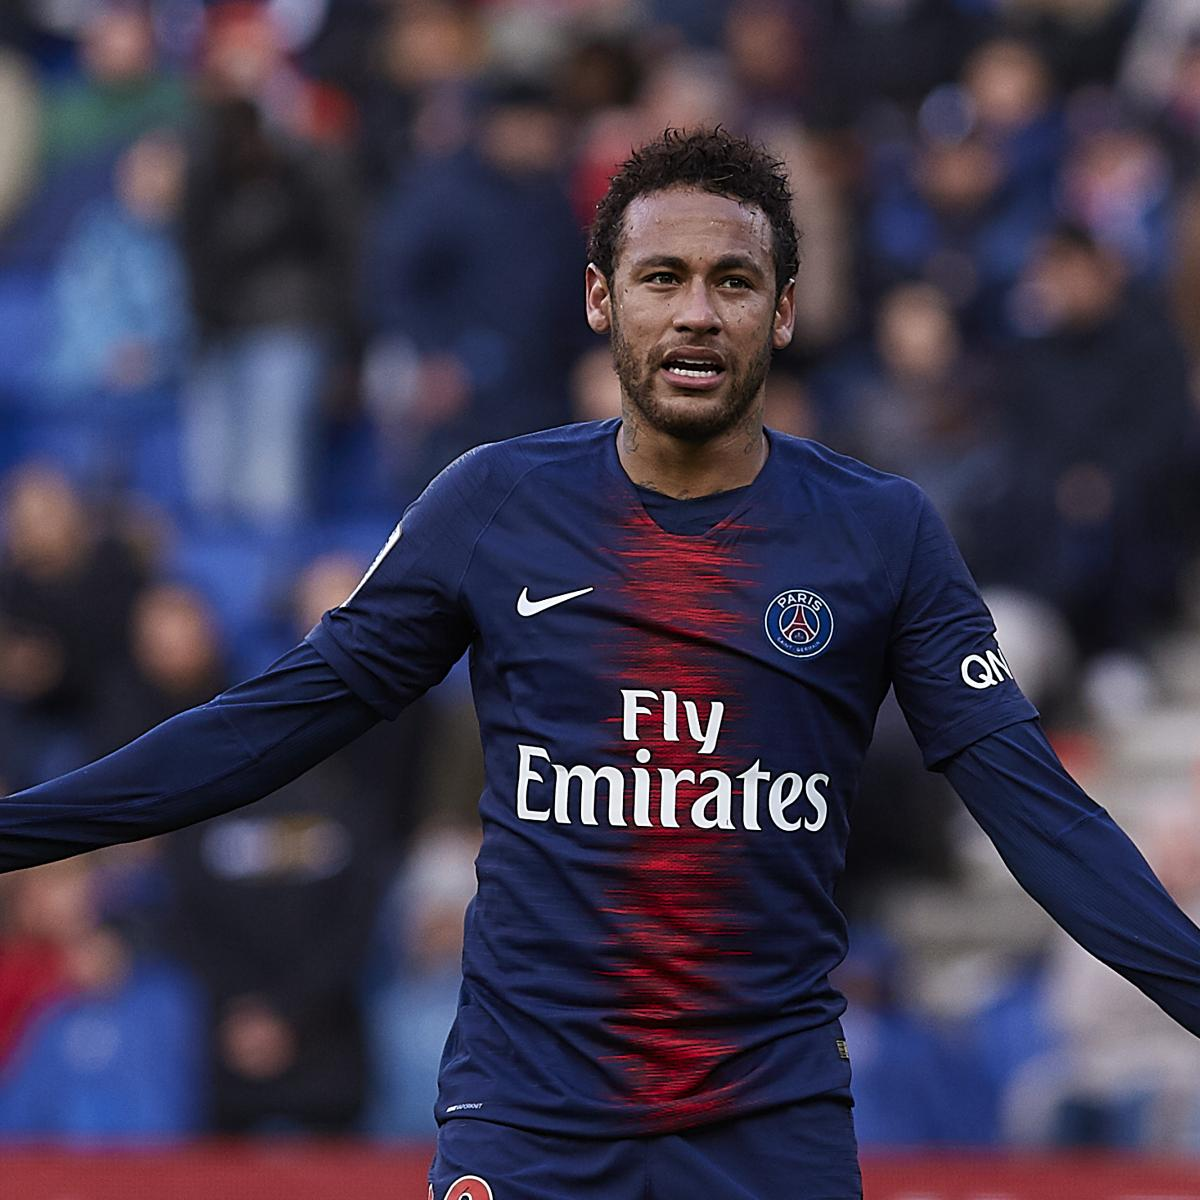 Bastia 0 3 Psg Match Report: Neymar Given 3-Match Ban For Hitting Fan After PSG's Coupe